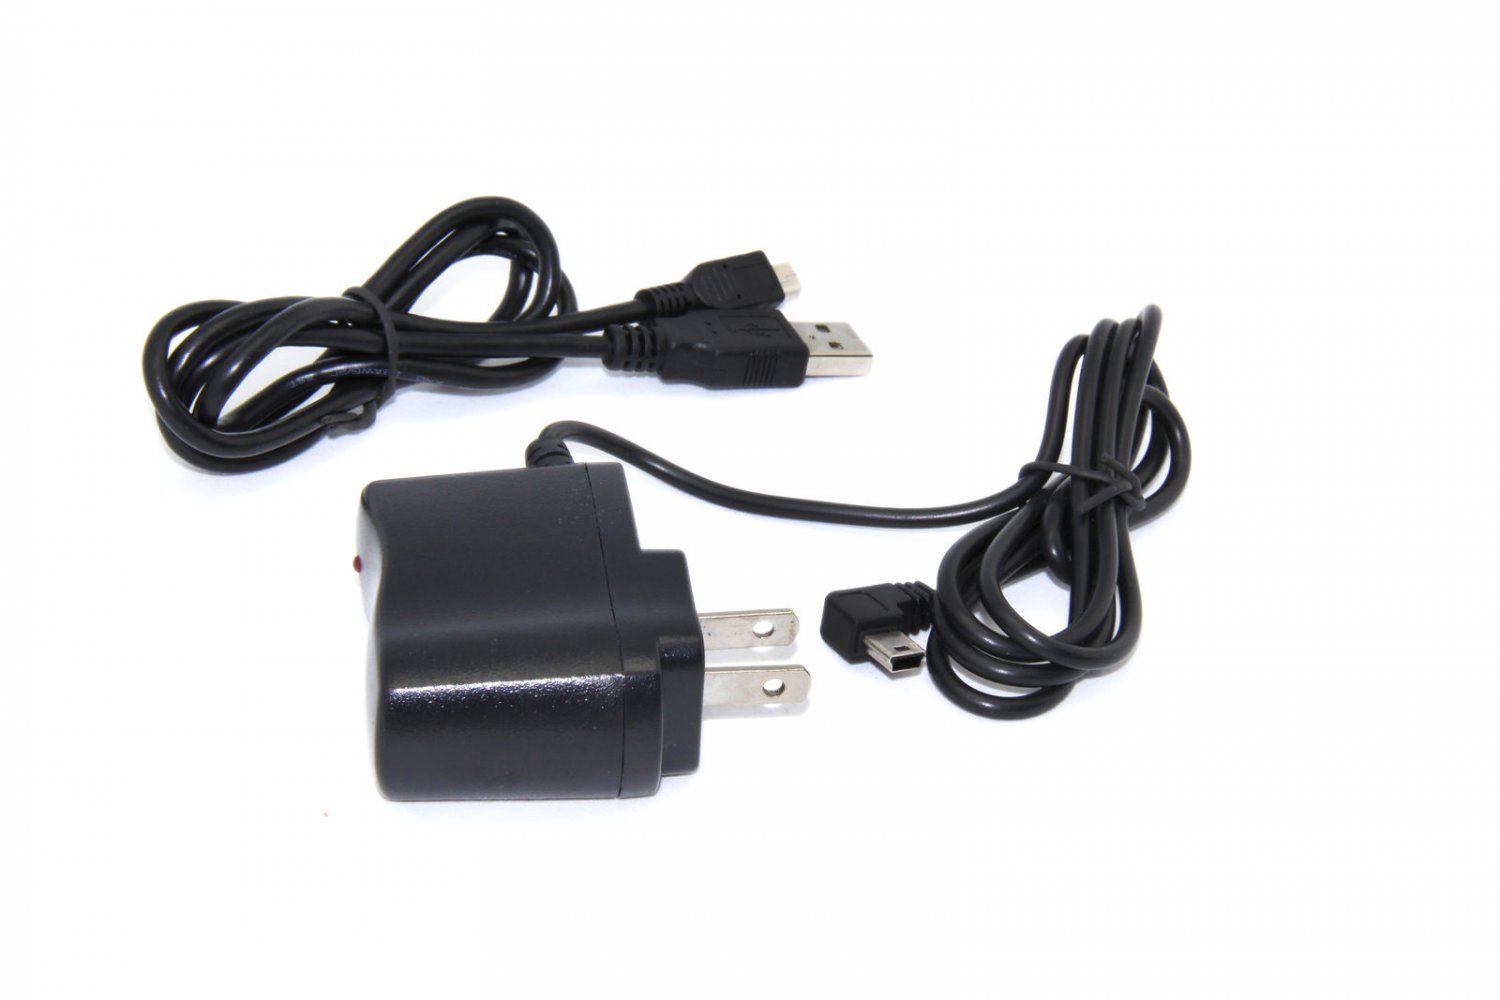 AC/DC Power Charger Adapter+USB Cord For Pandigital PANSCN09 PU Handheld Scanner